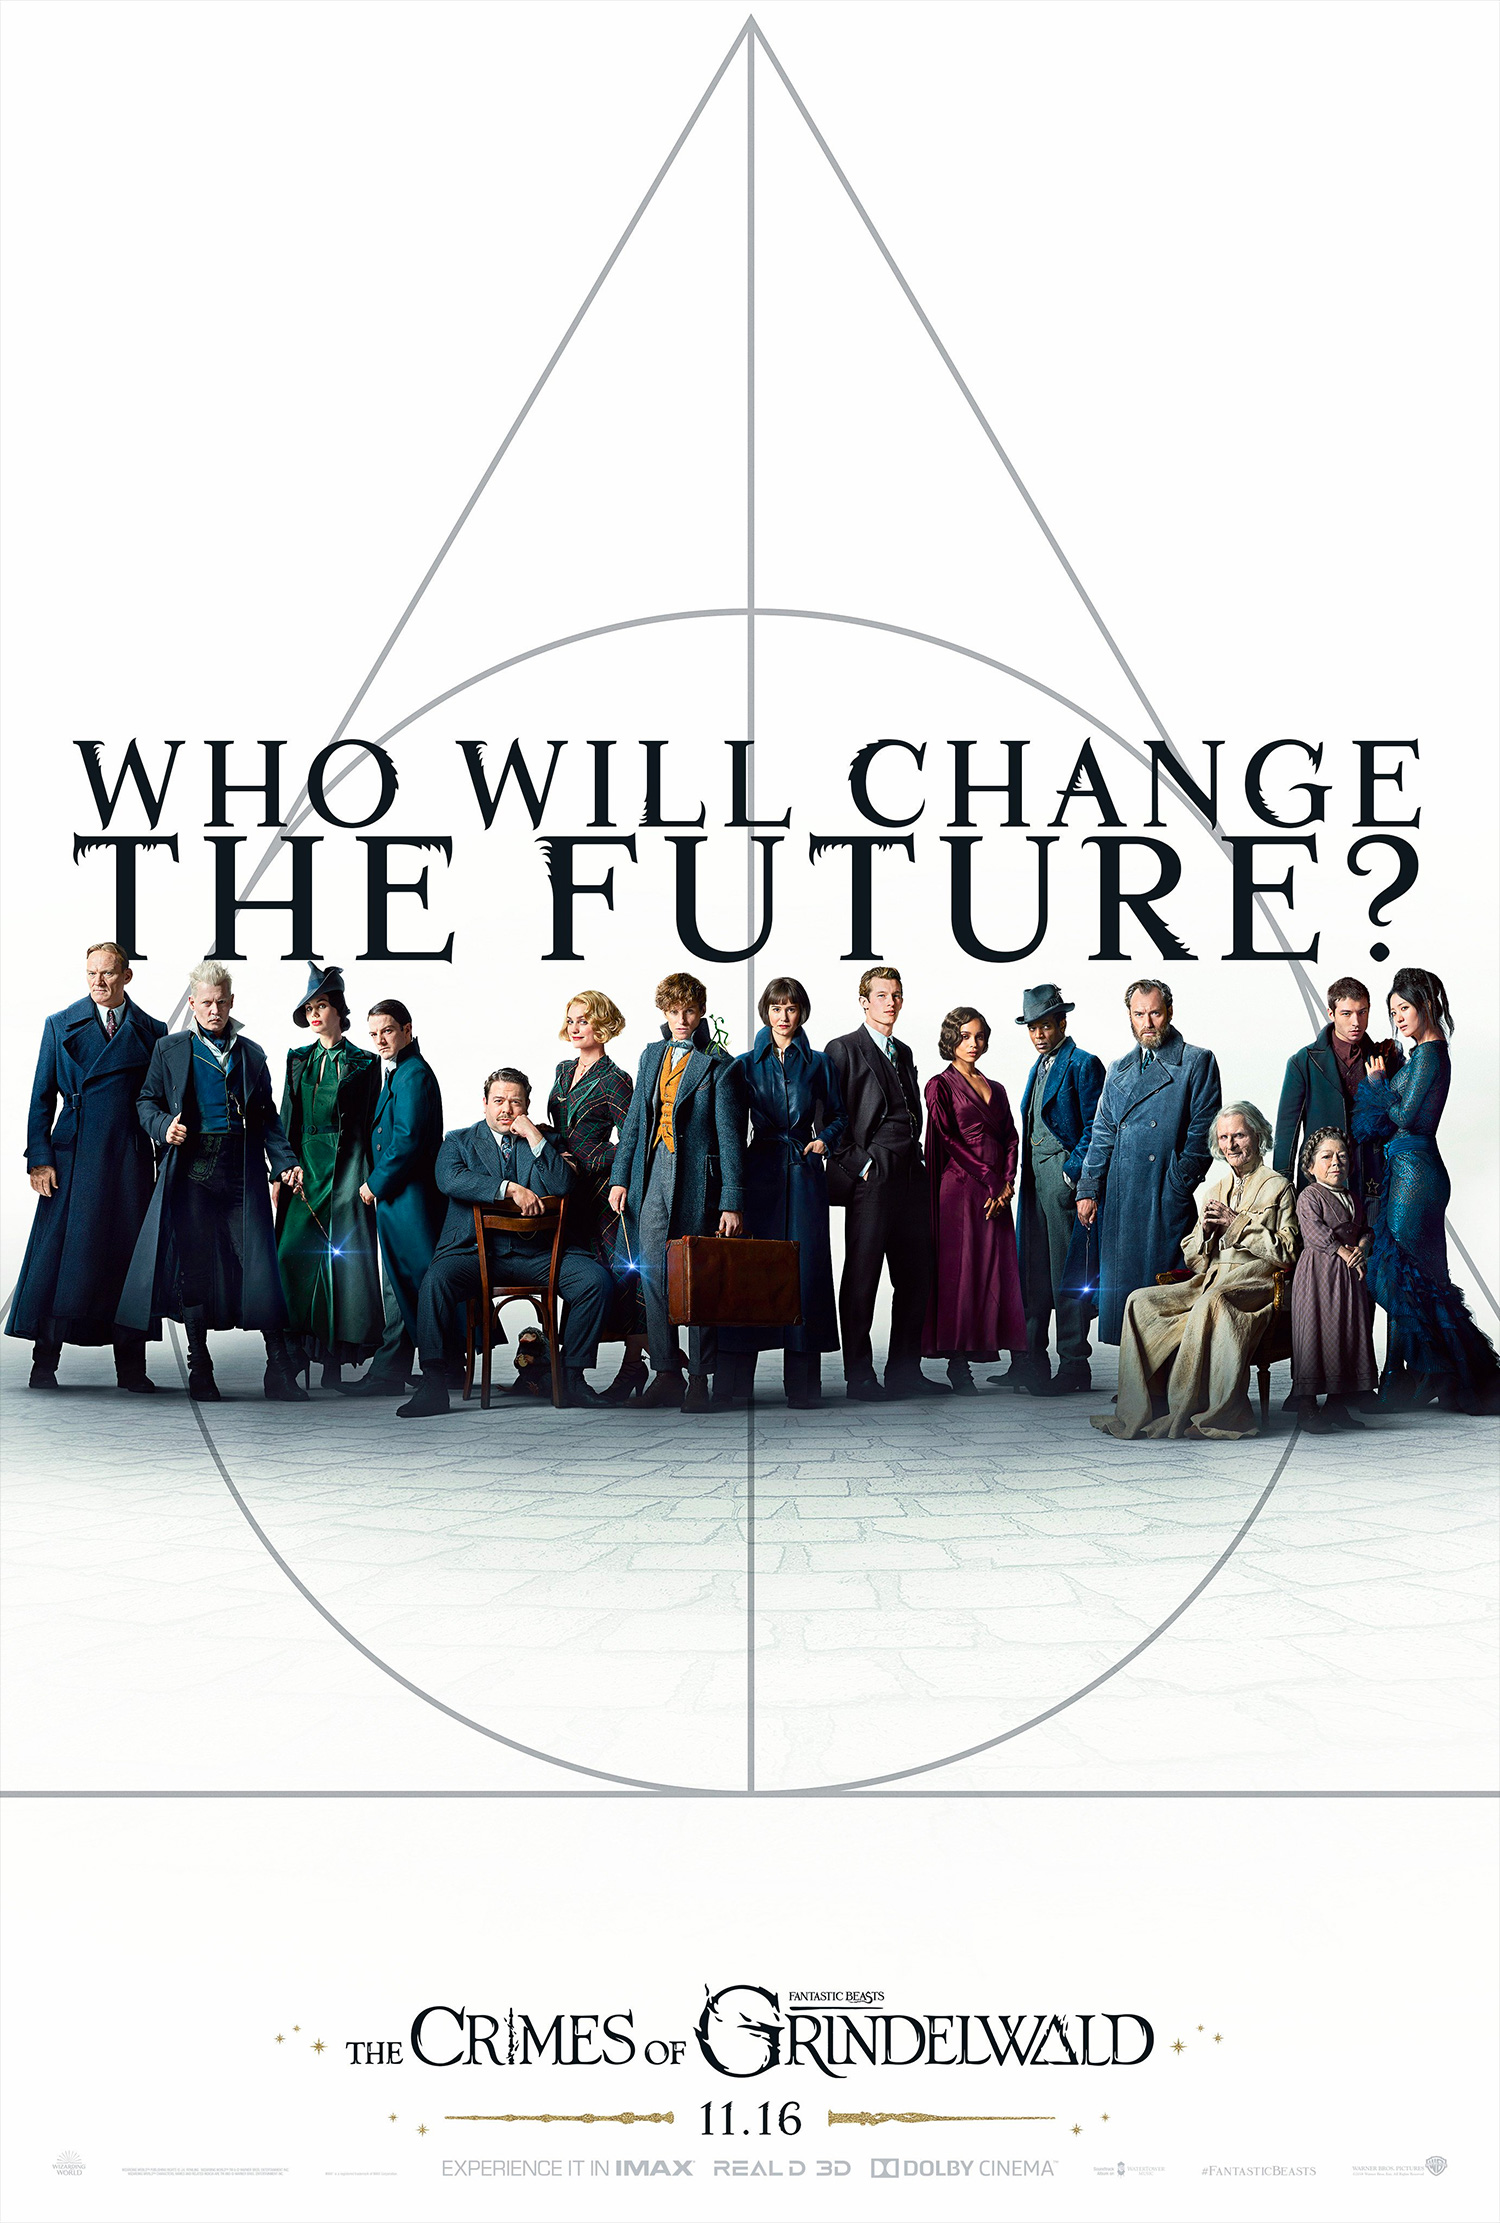 'Crimes of Grindelwald' 'Who Will Change the Future' poster